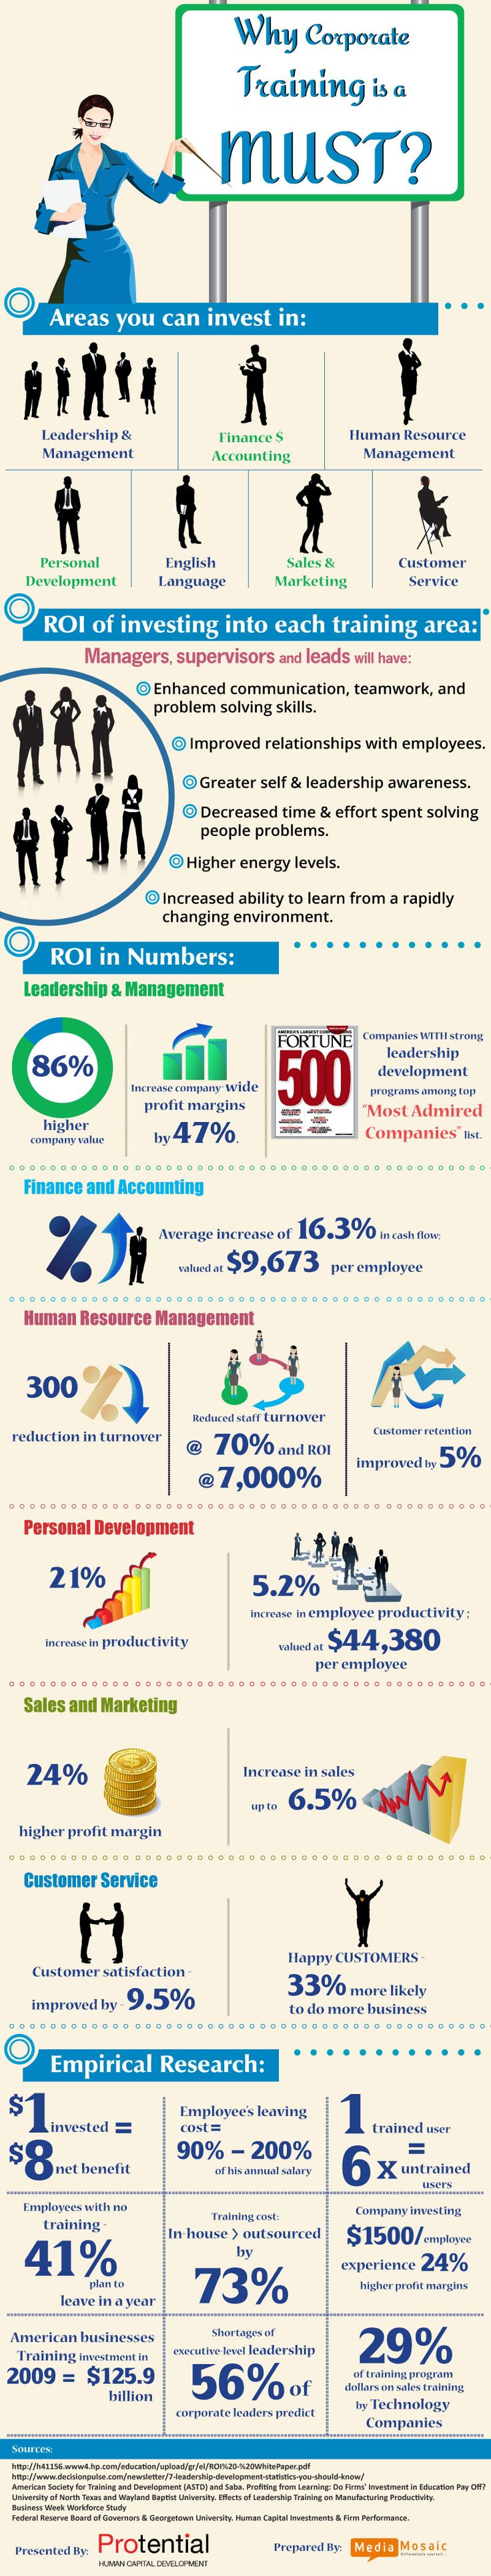 How Businesses Can Benefit by Investing in Corporate Training  and ROI Calculation by Protential Infographic